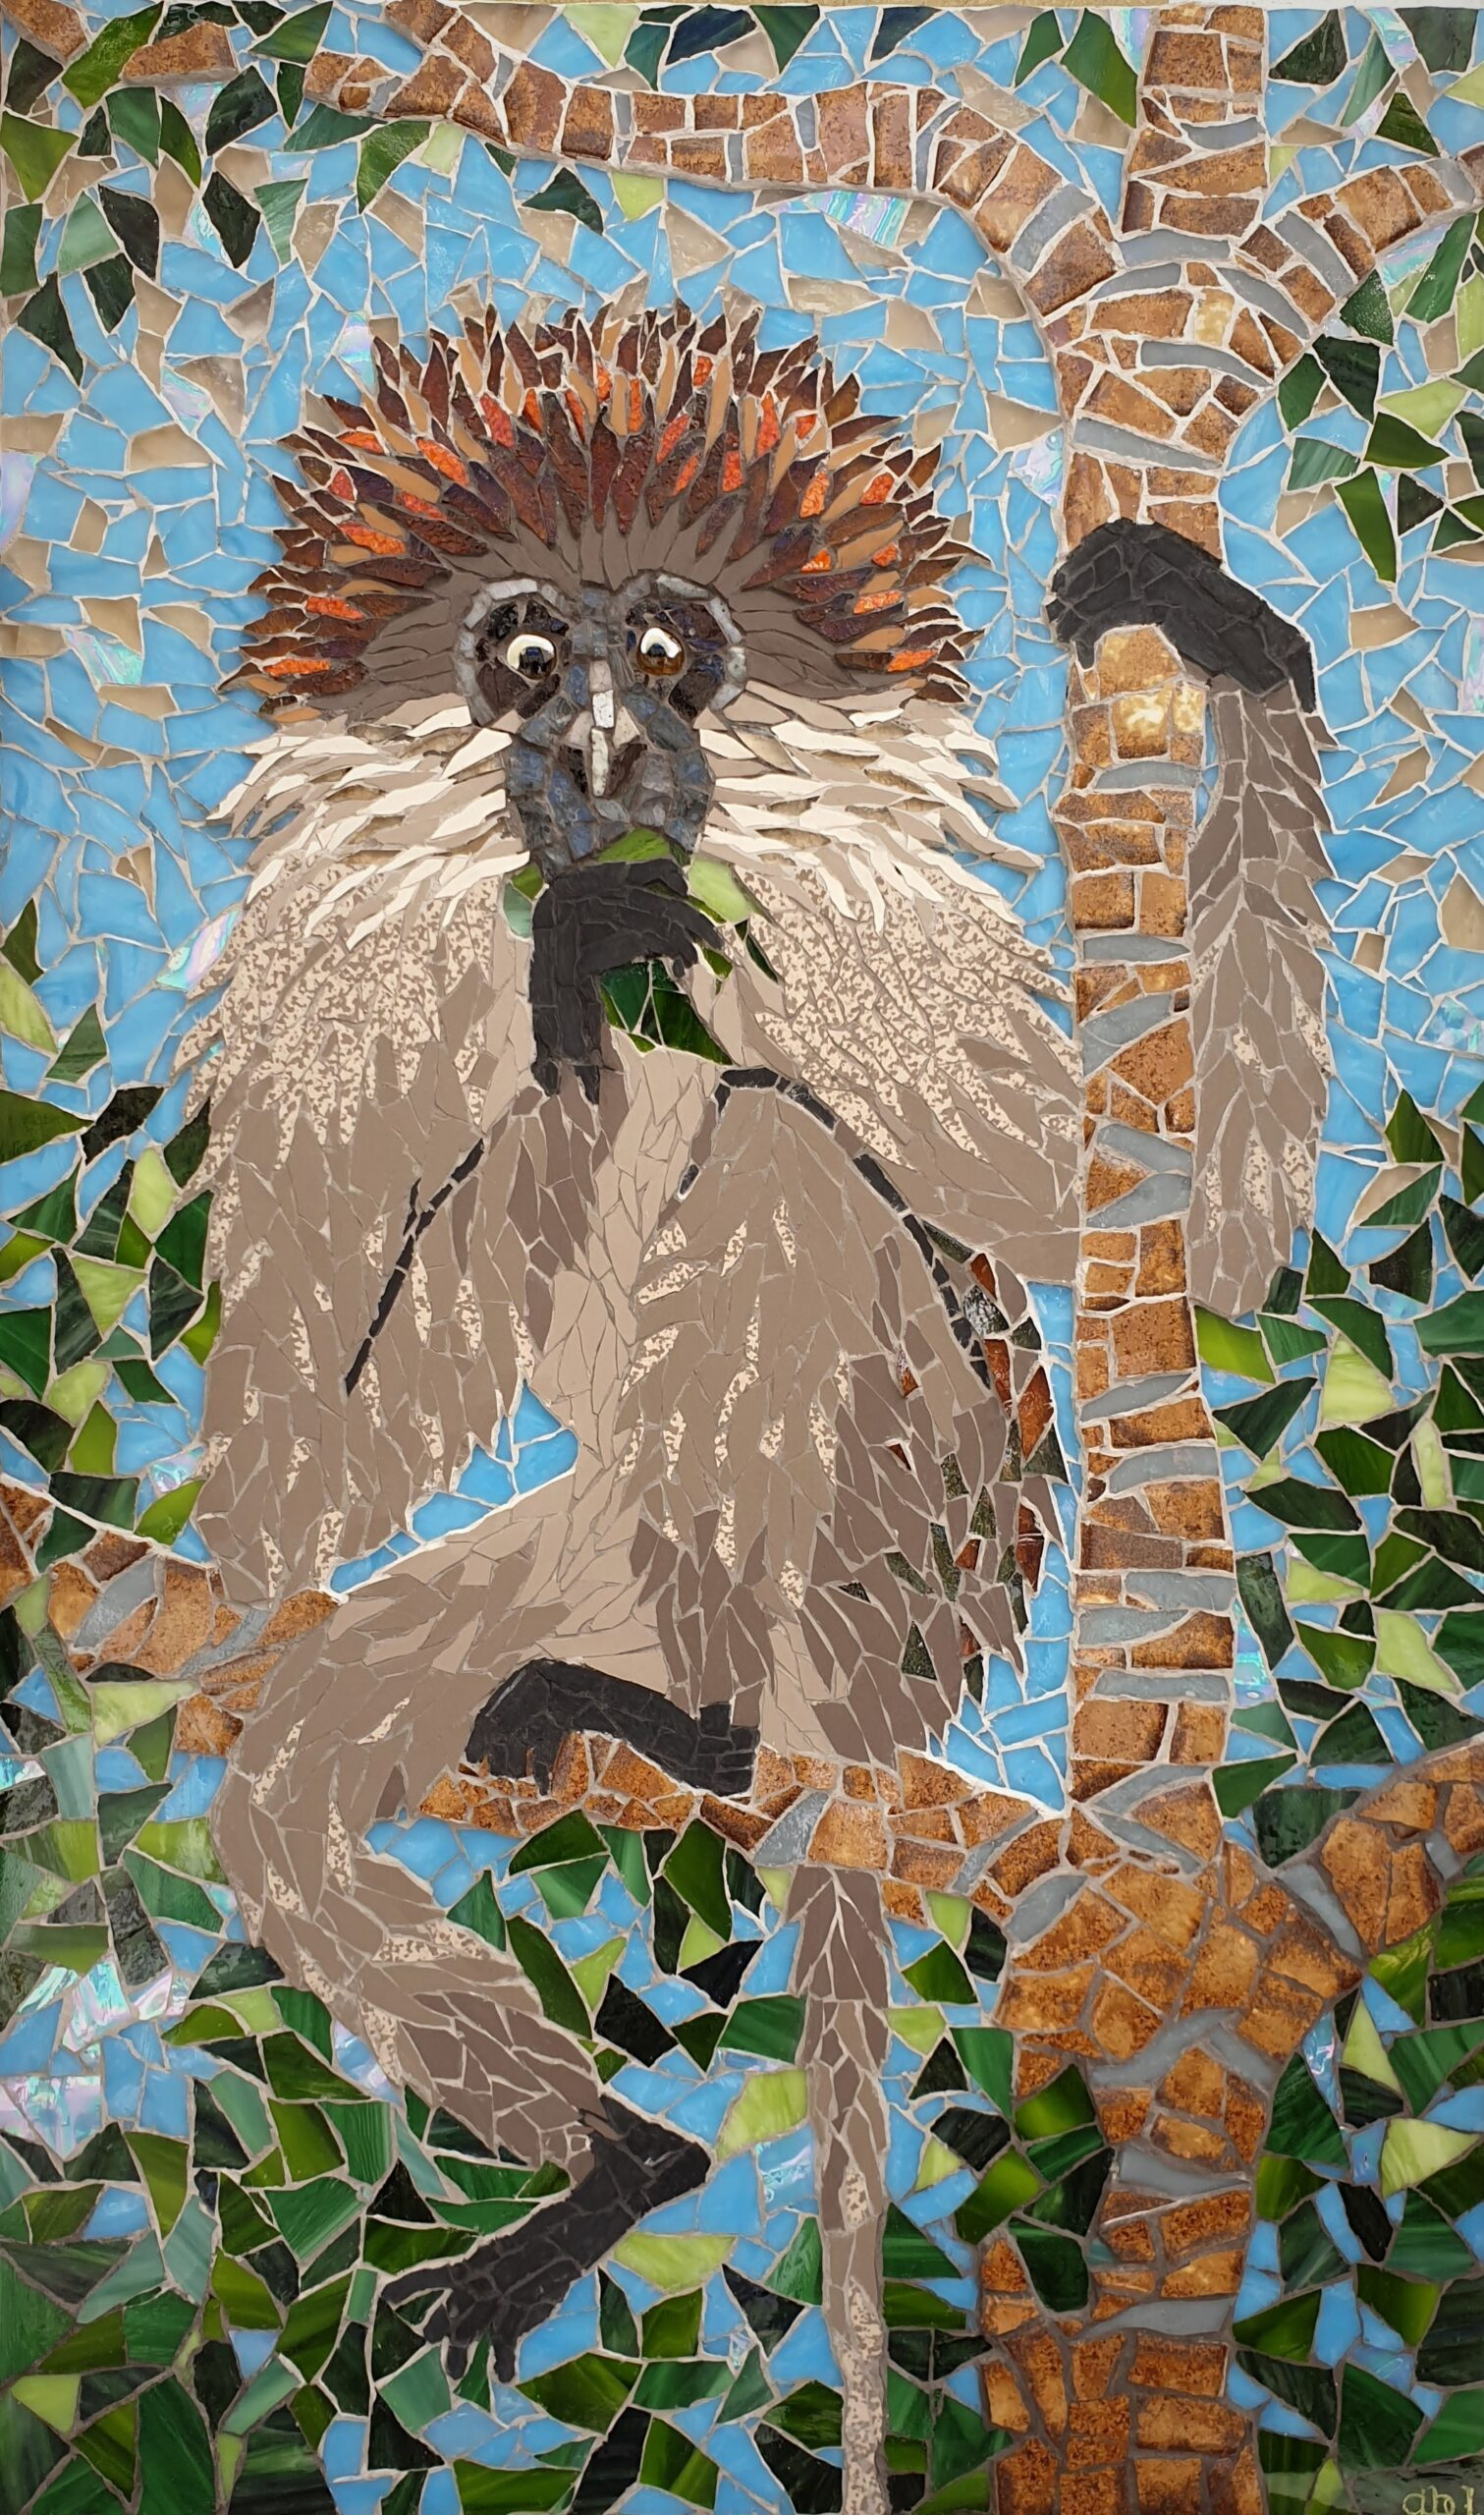 Tana River Red Colobus – mosaic in smalti, ceramic and glass by Emma Abel, 67x40cm, £402 + p&p